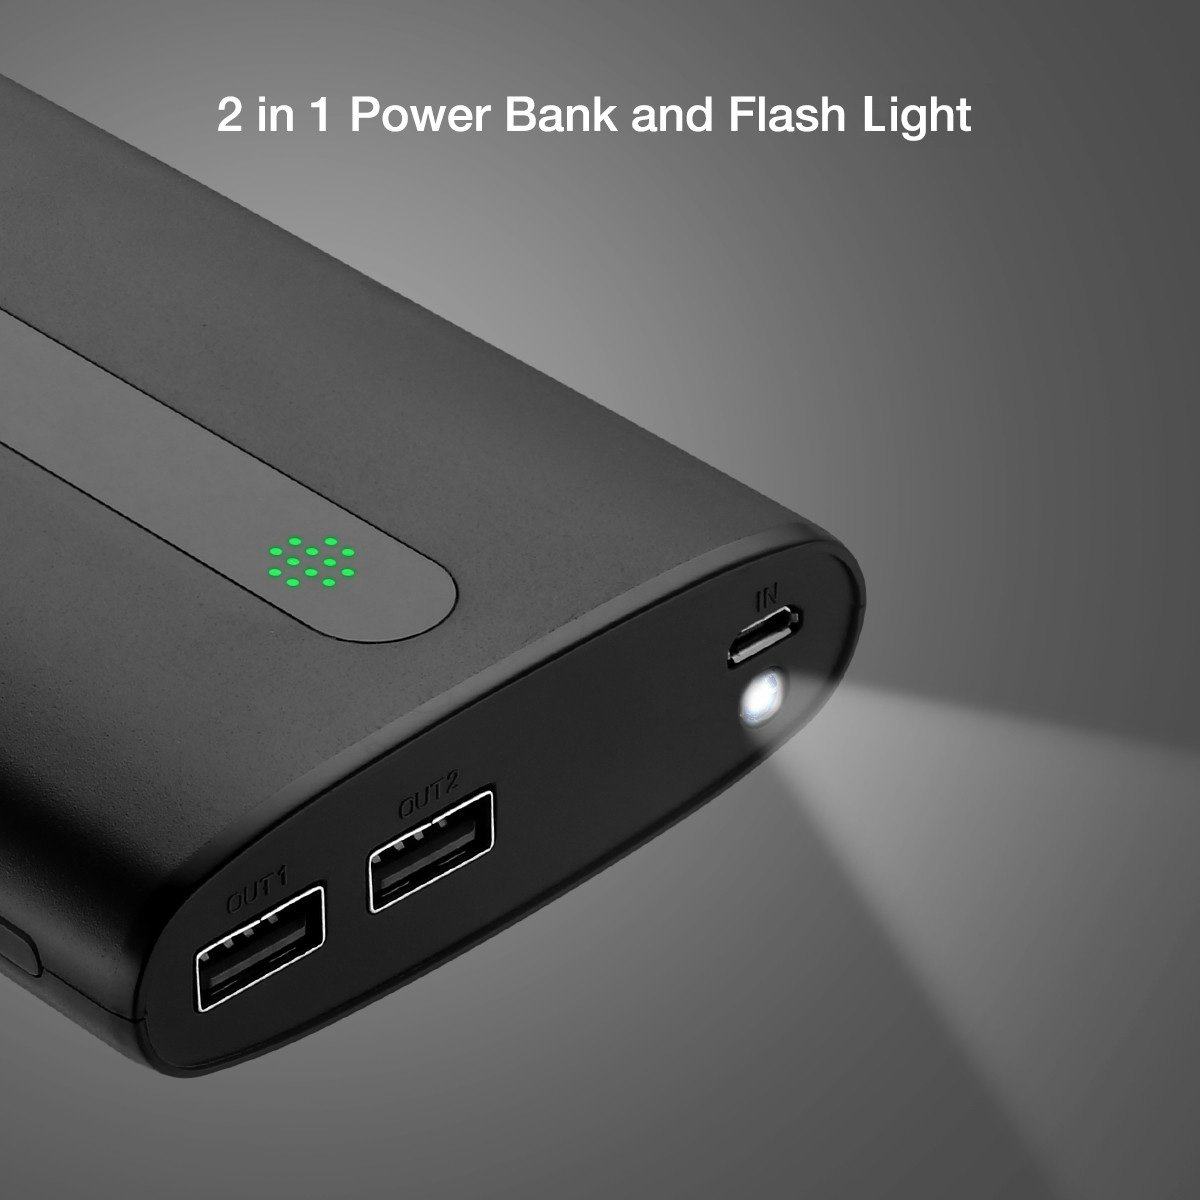 Aibocn Portable Phone Charger 20000mAh Power Bank, External Battery with LED Lights and Dual Ports for iPhone, iPad, Android, Samsung Galaxy and Other Devices